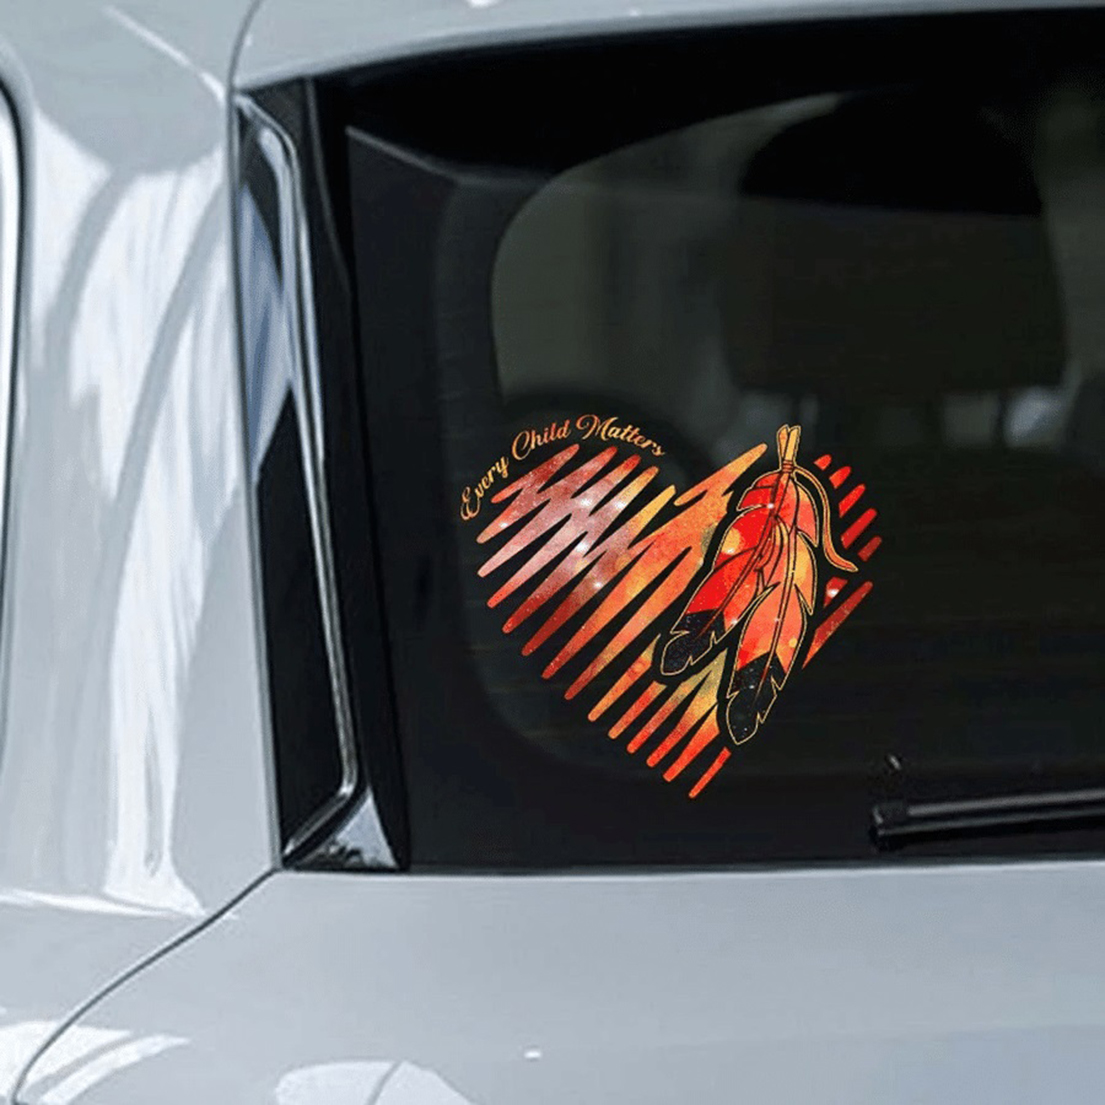 Native American Every child matters heart car sticker - Picture 1